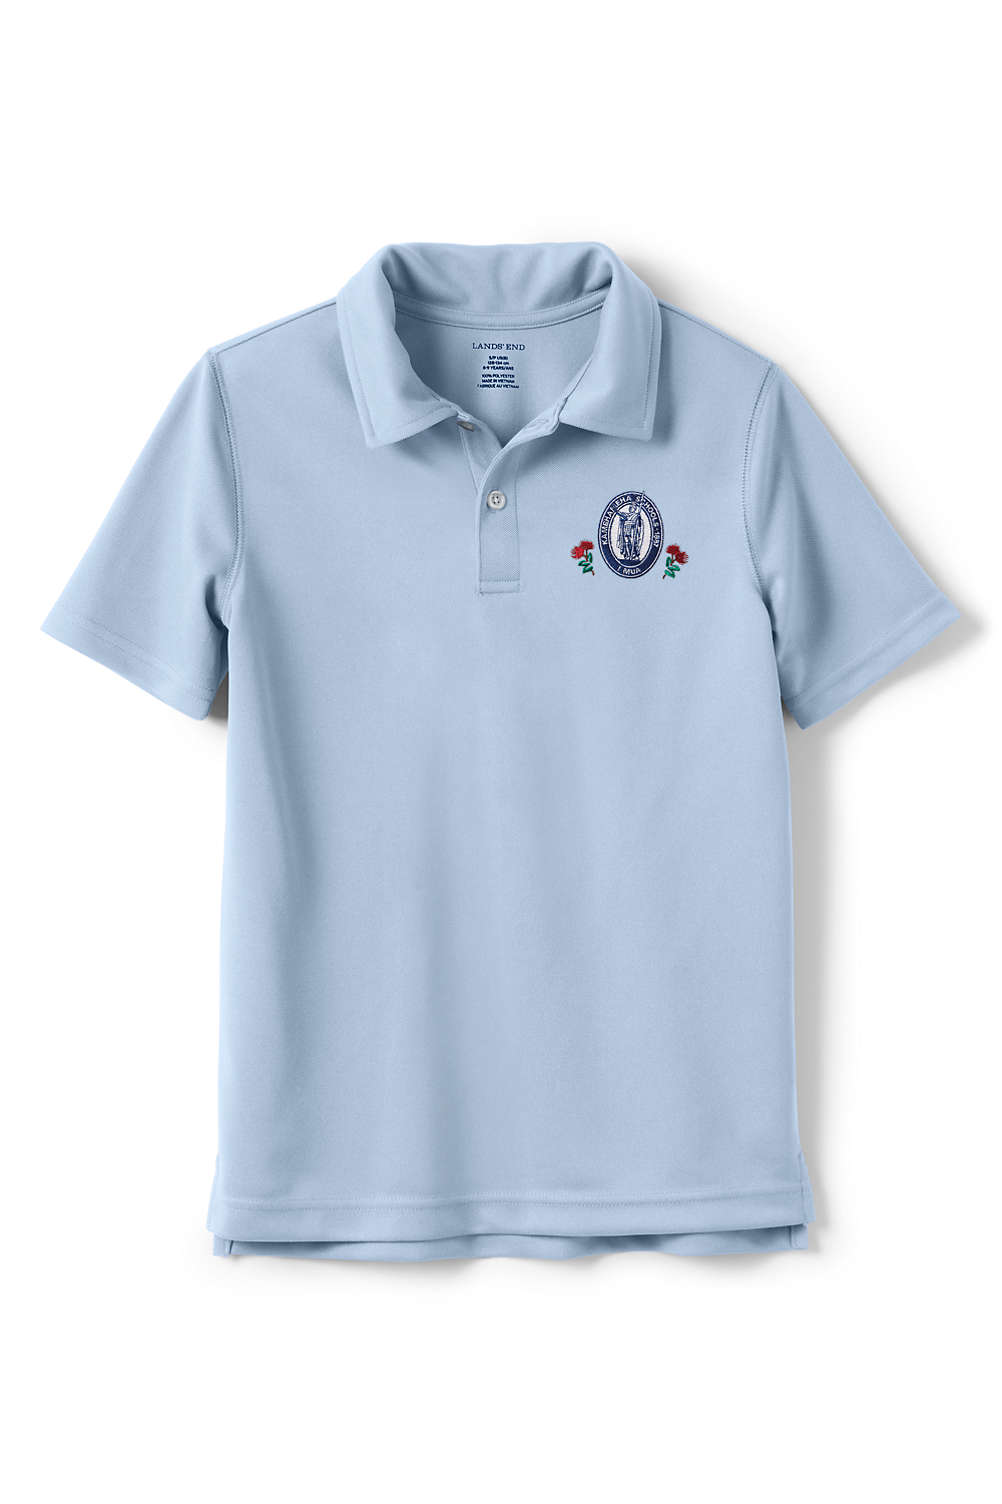 391ea1ecd78a School Uniform Kamehameha Boys Short Sleeve Poly Polo